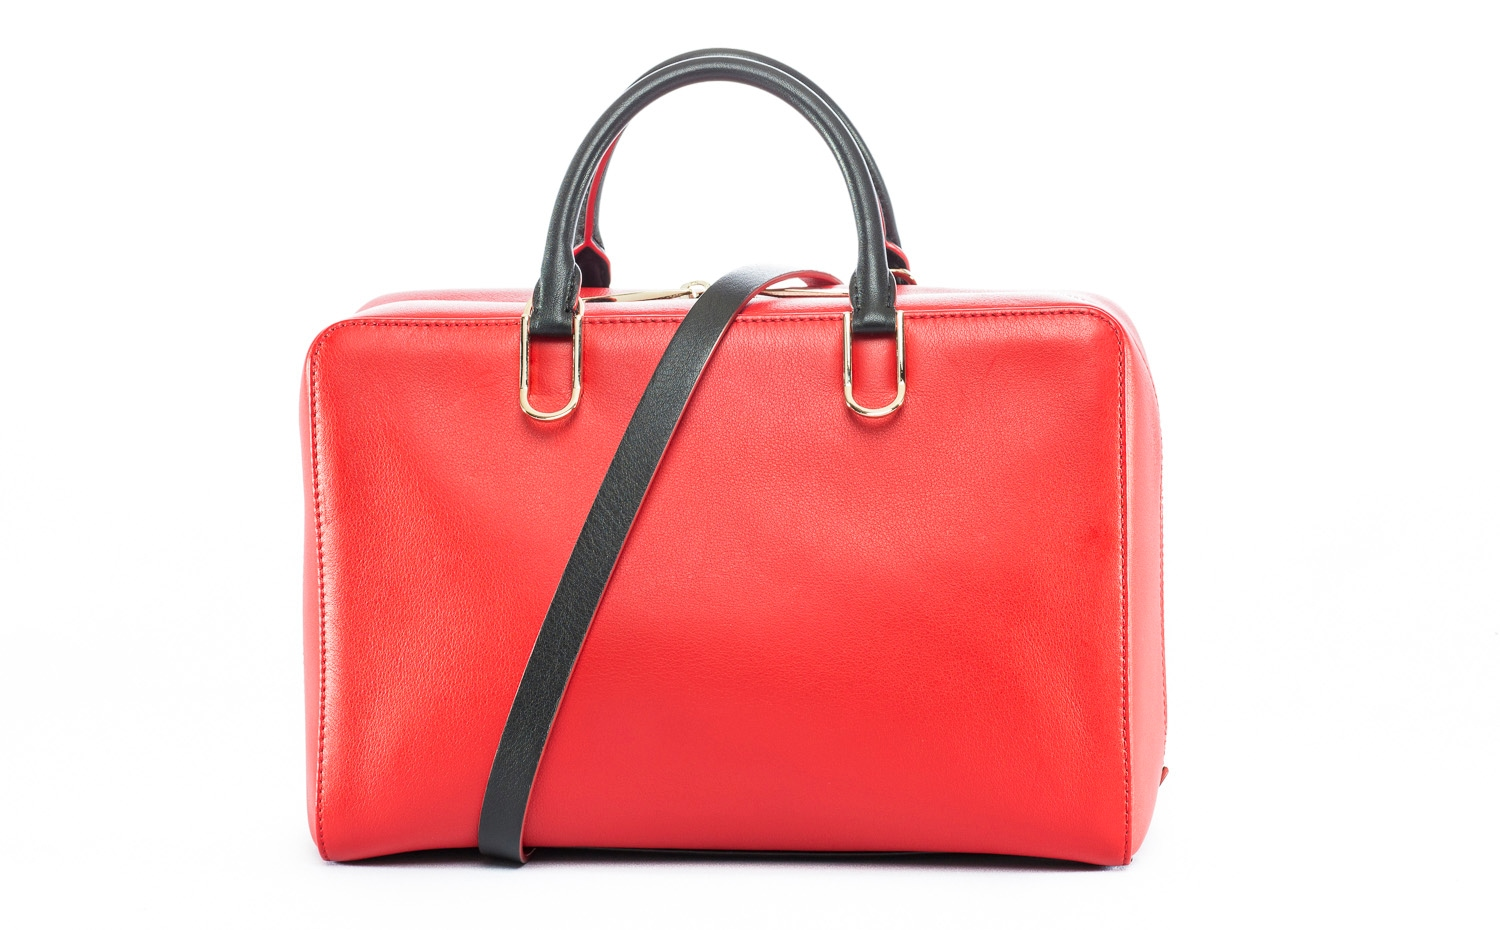 CH Carolina Herrera: Duke in Greco Red